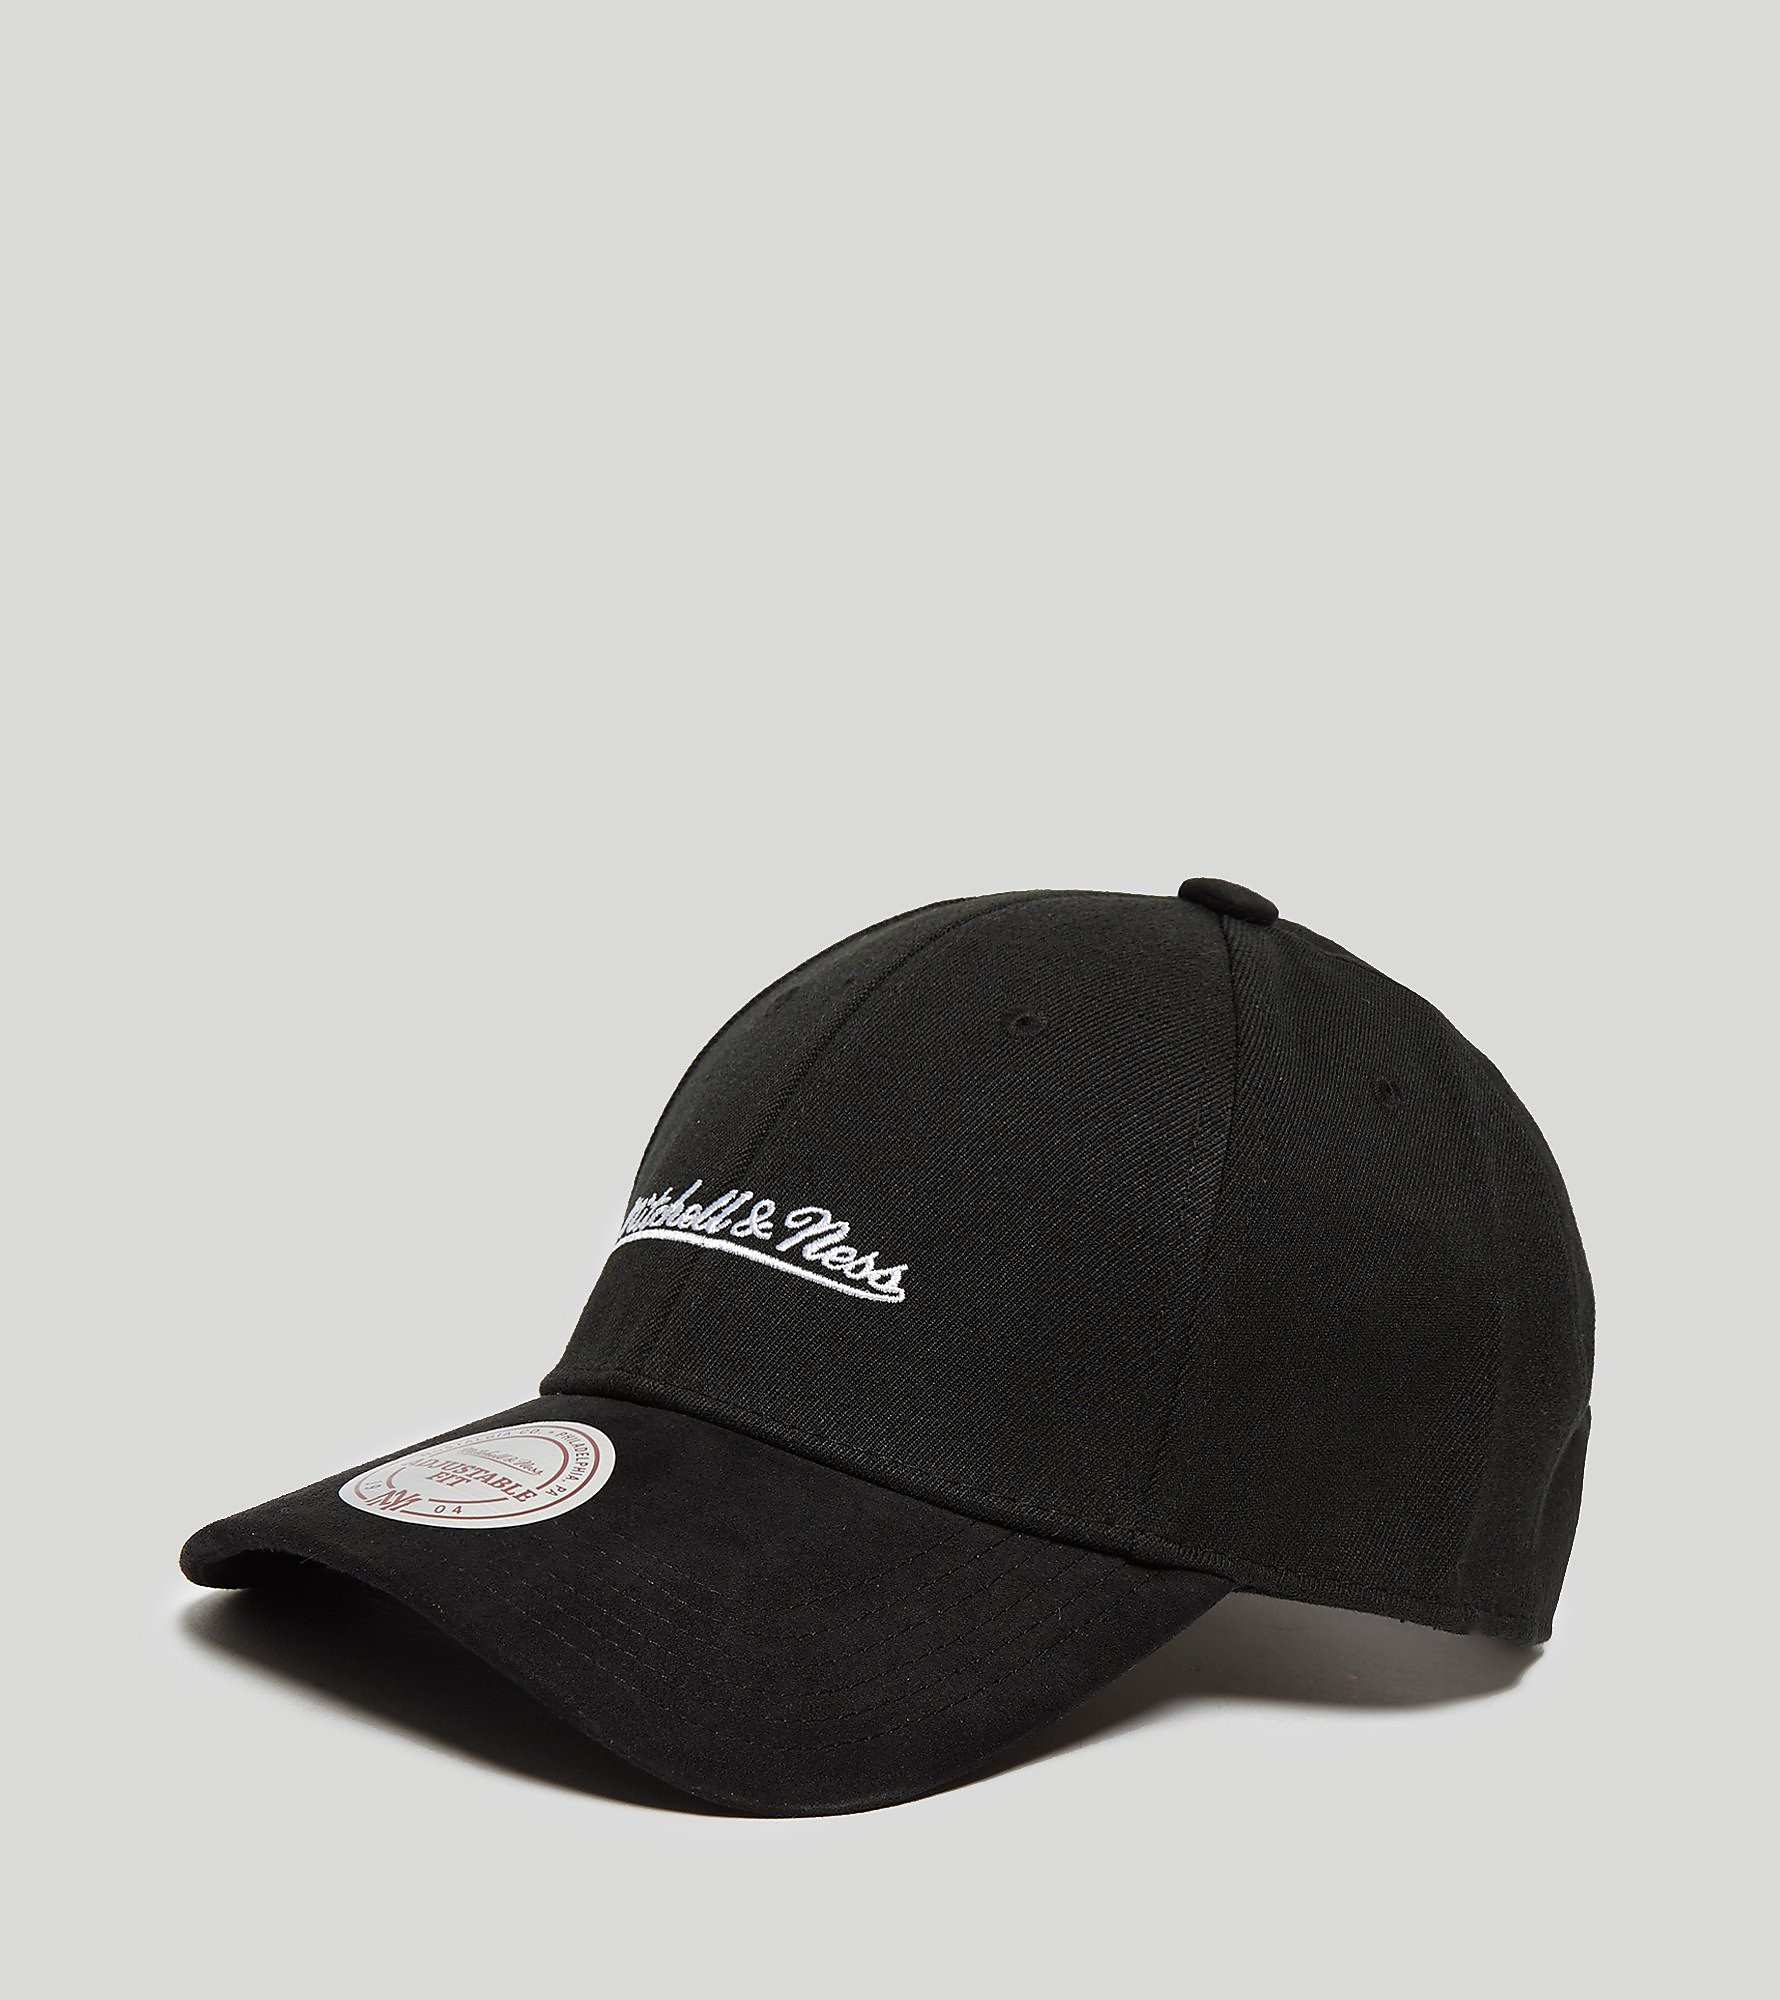 Mitchell & Ness Low Pro Scipt Curved Snapback